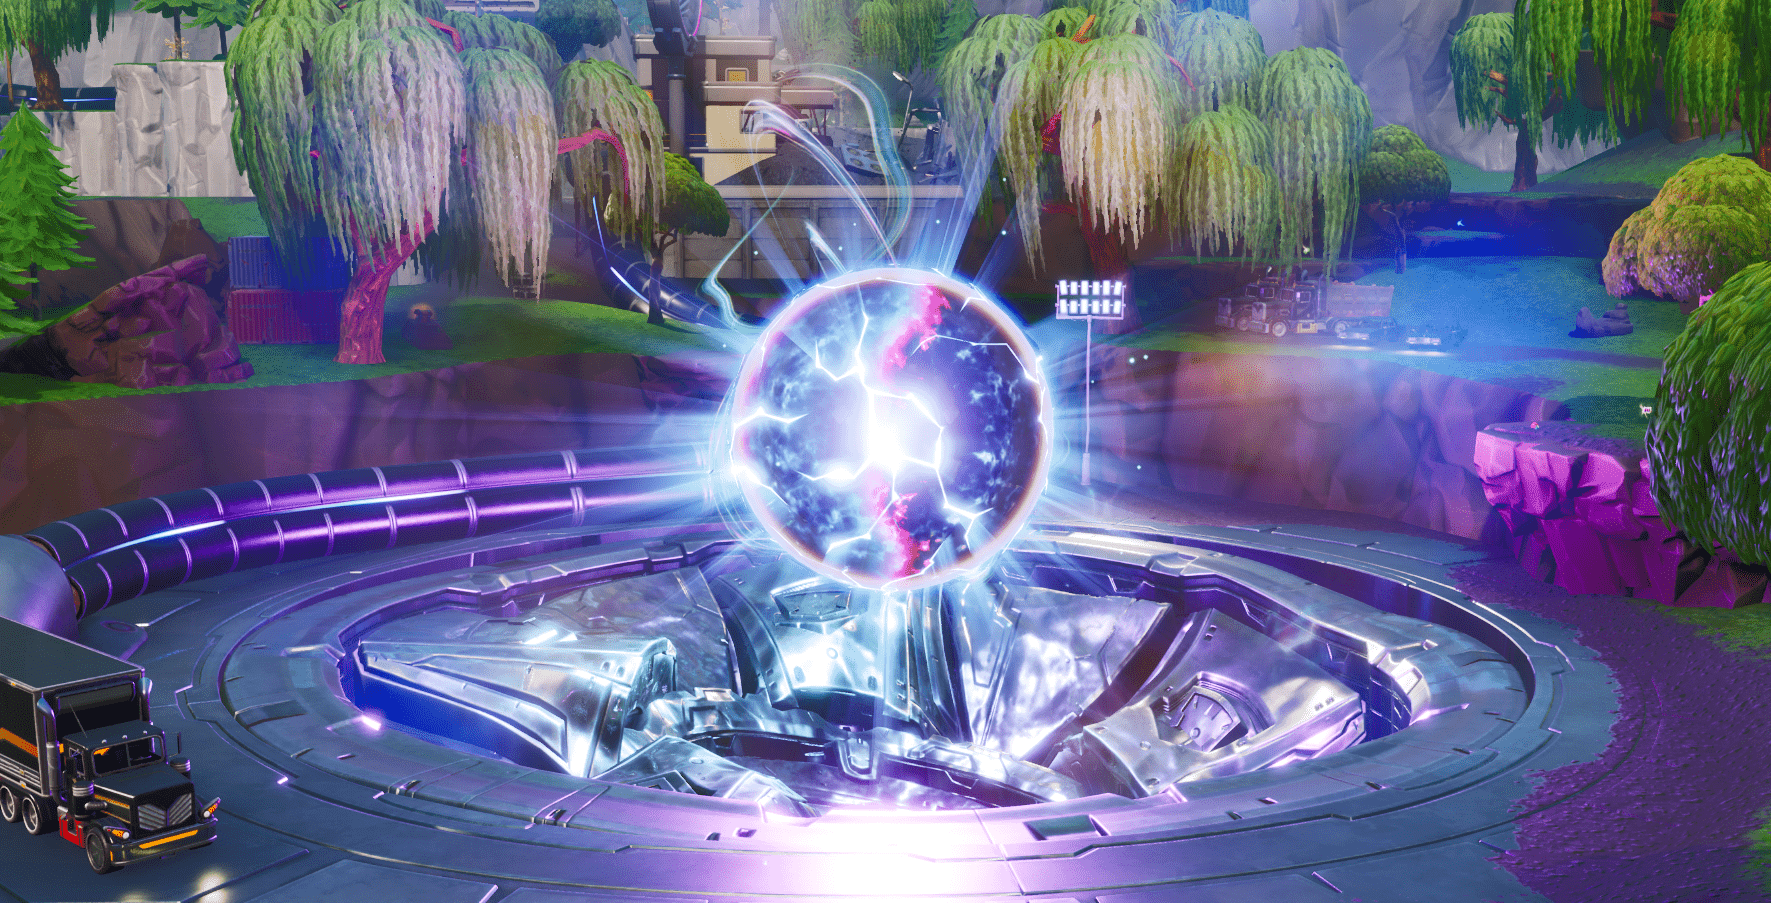 Fortnite Zero Point Orb Is Now In Stage 3 Leading Up To Season 10 Fortnite Insider The orb was first seen in fortnite in the final showdown event where we saw the. fortnite zero point orb is now in stage